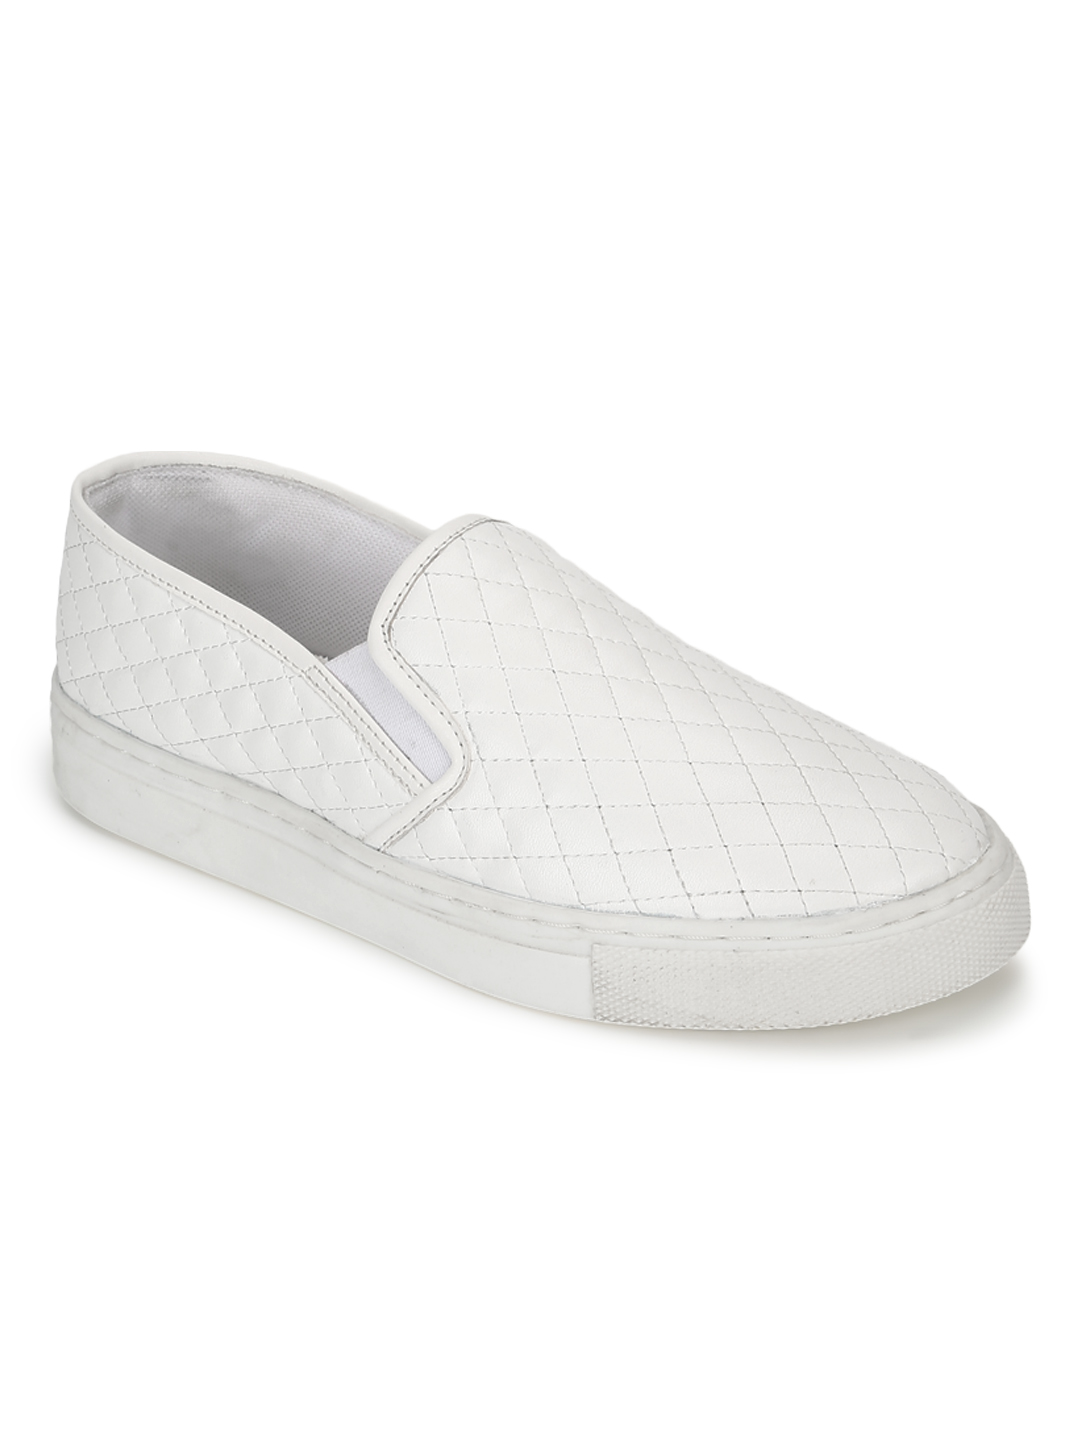 Truffle Collection | Truffle Collection White PU Quilted Slip On Shoes